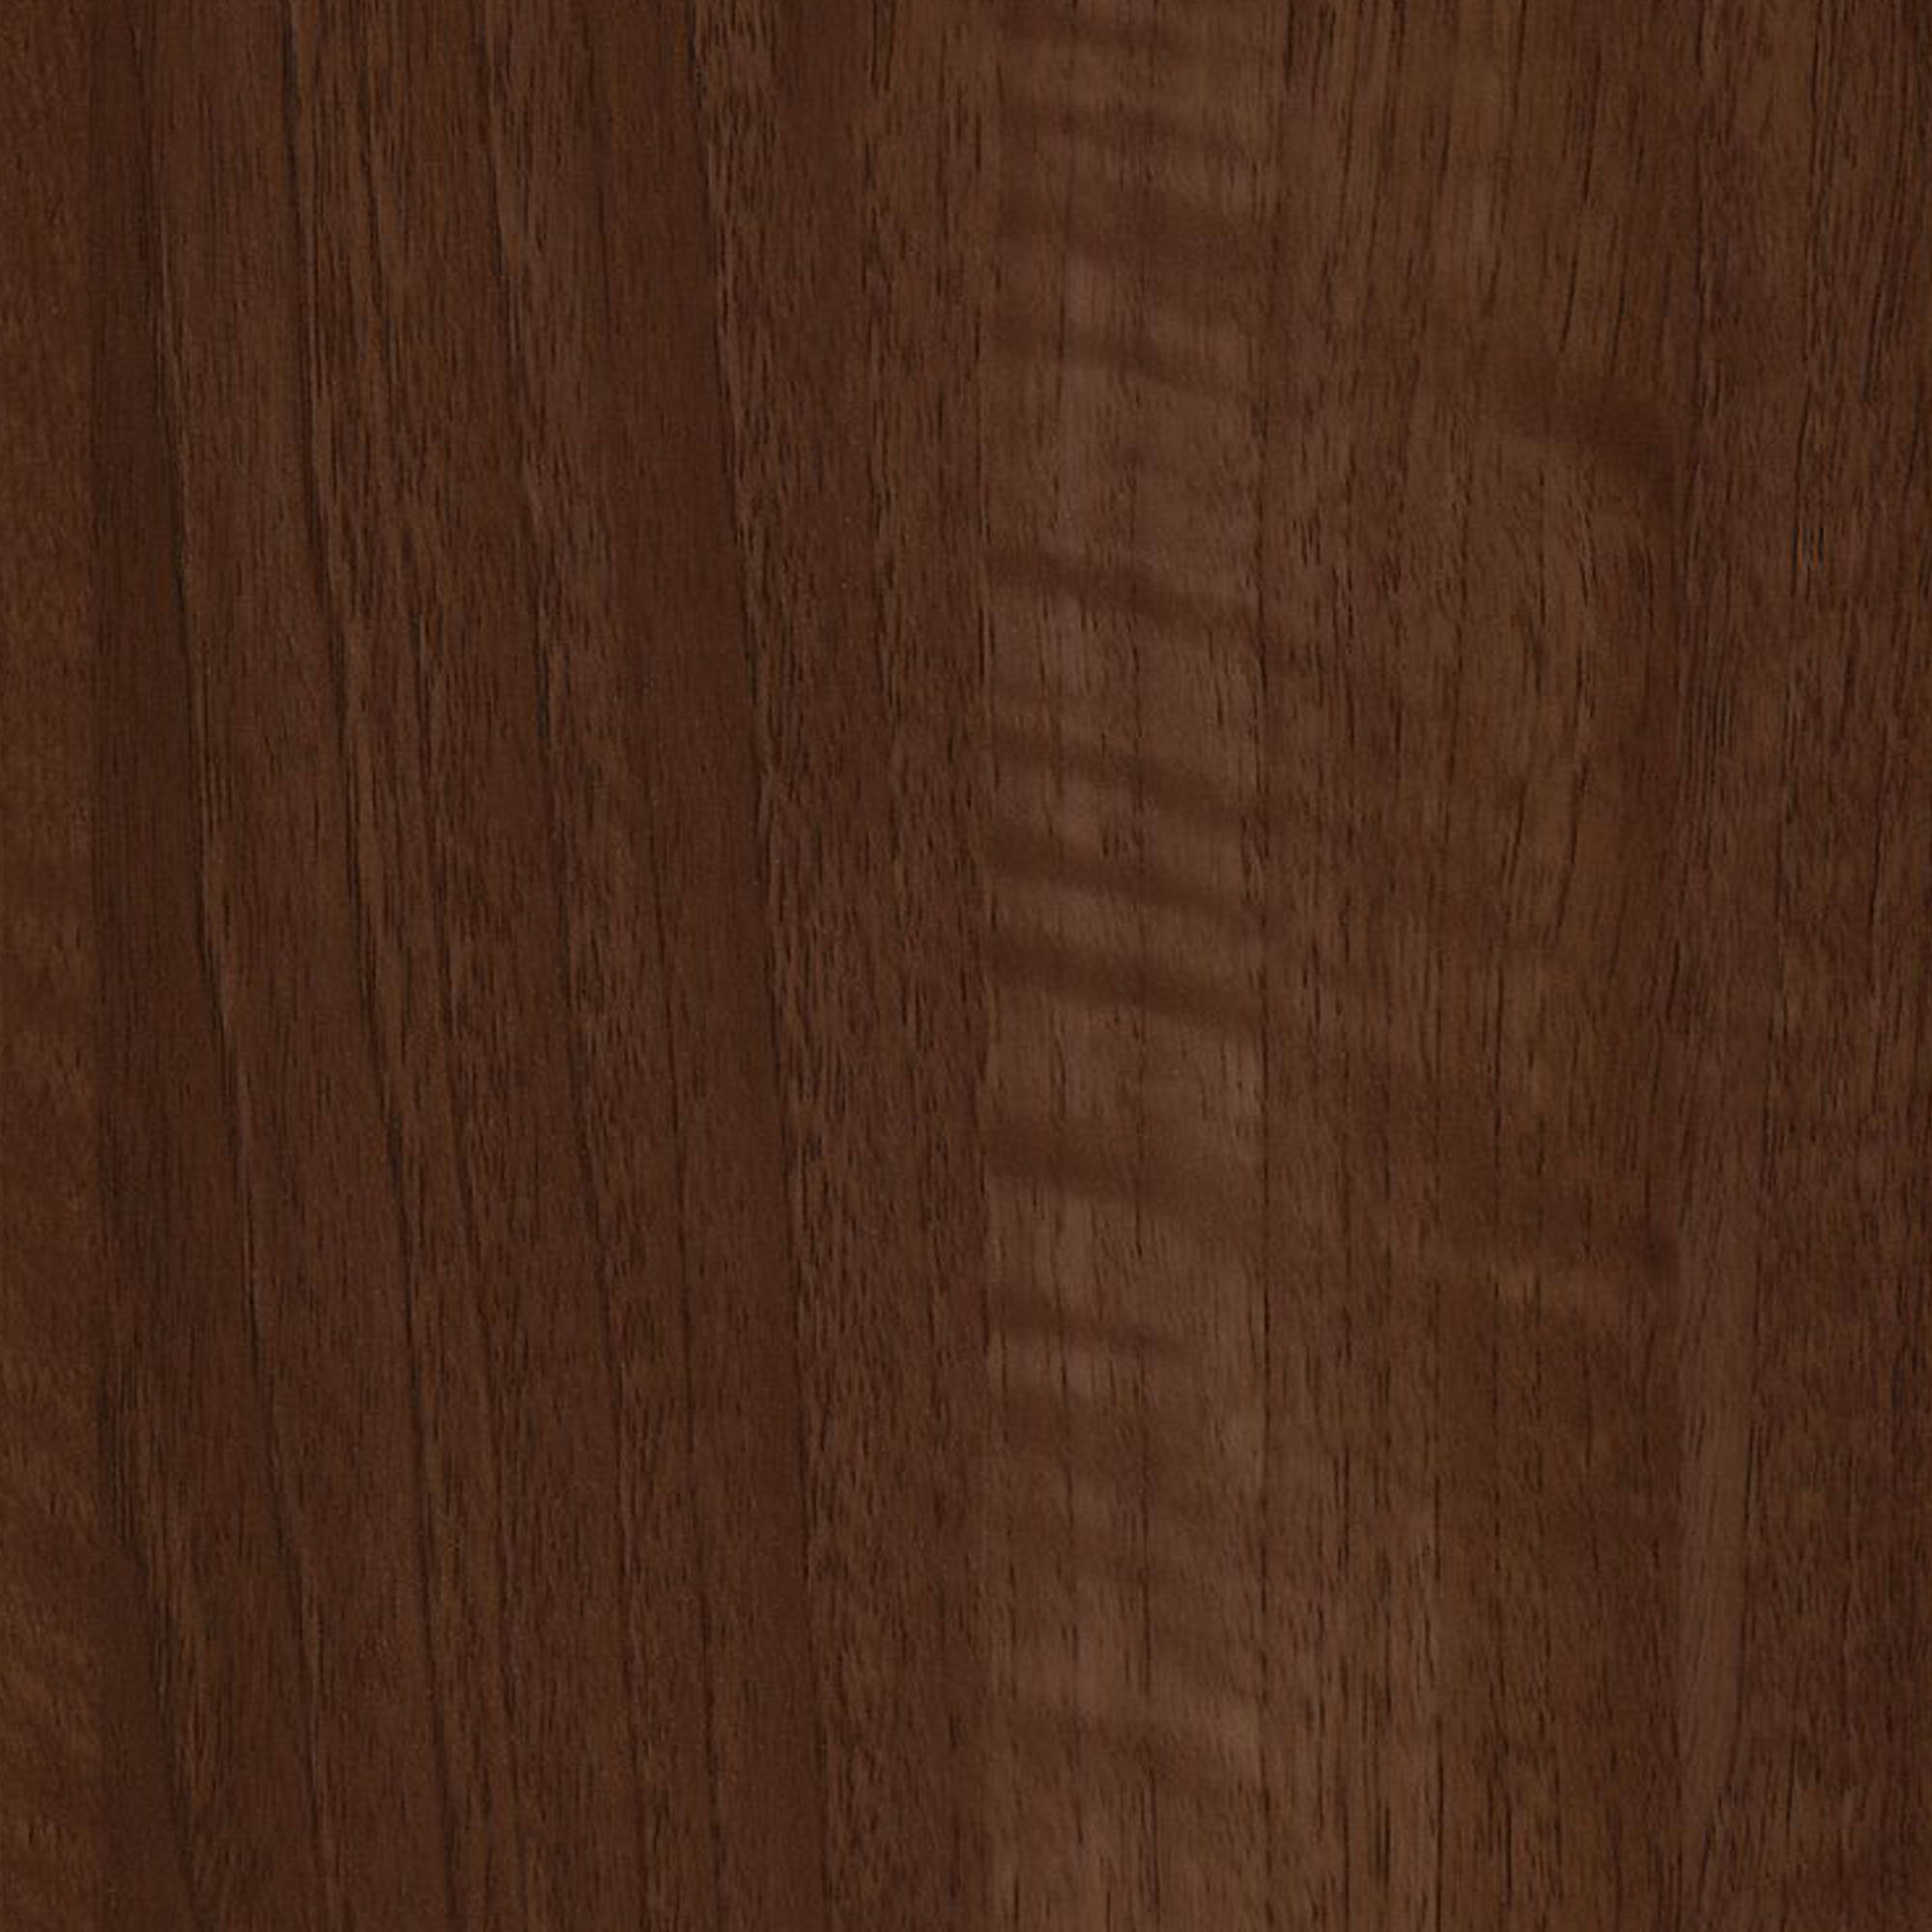 High Gloss Sienna Walnut Thermofoil